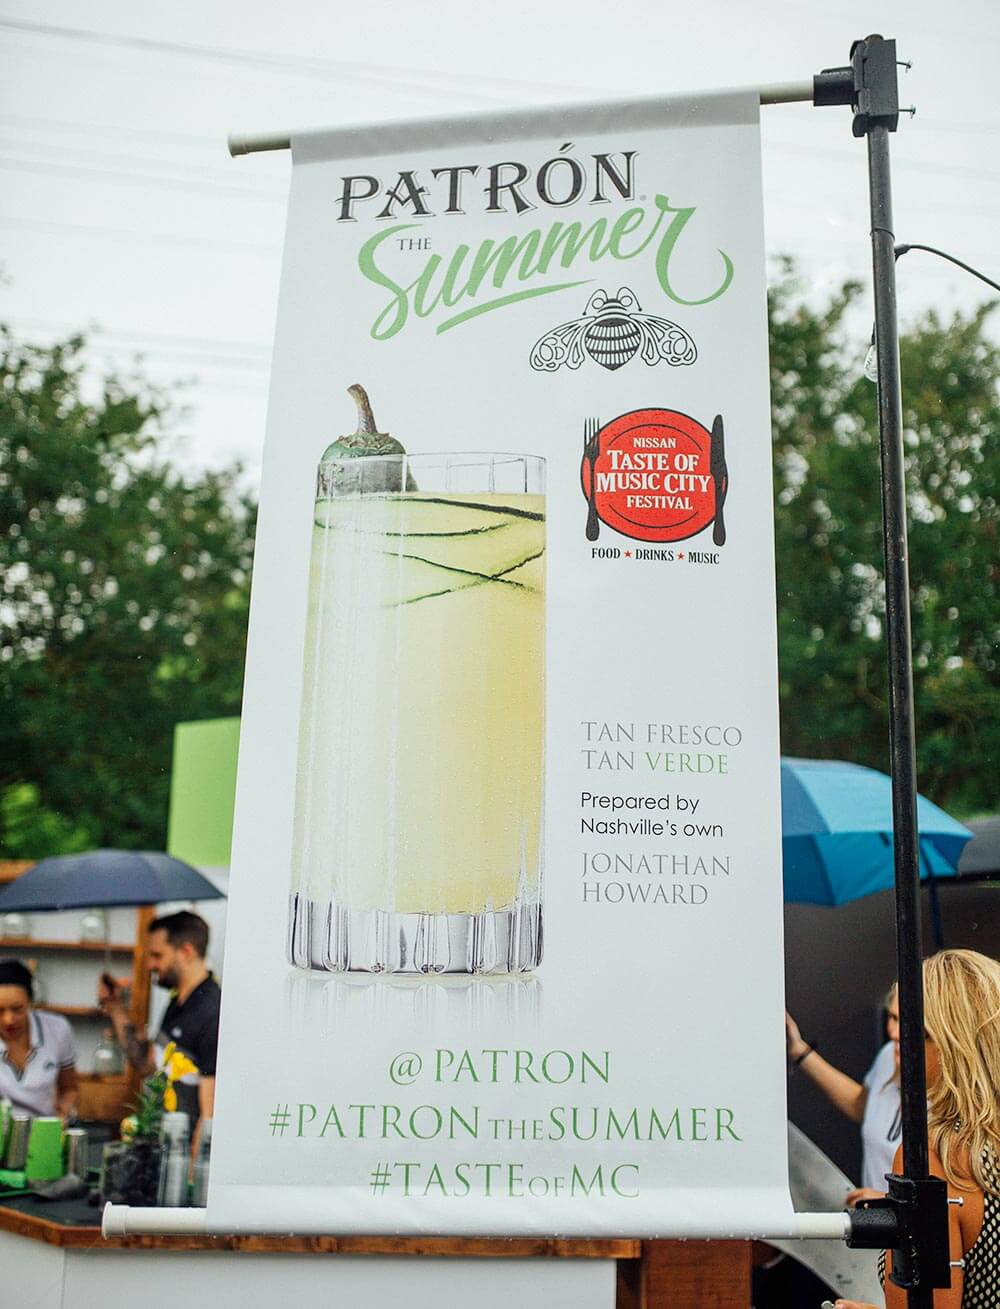 'Patrón the Summer', display banner at event